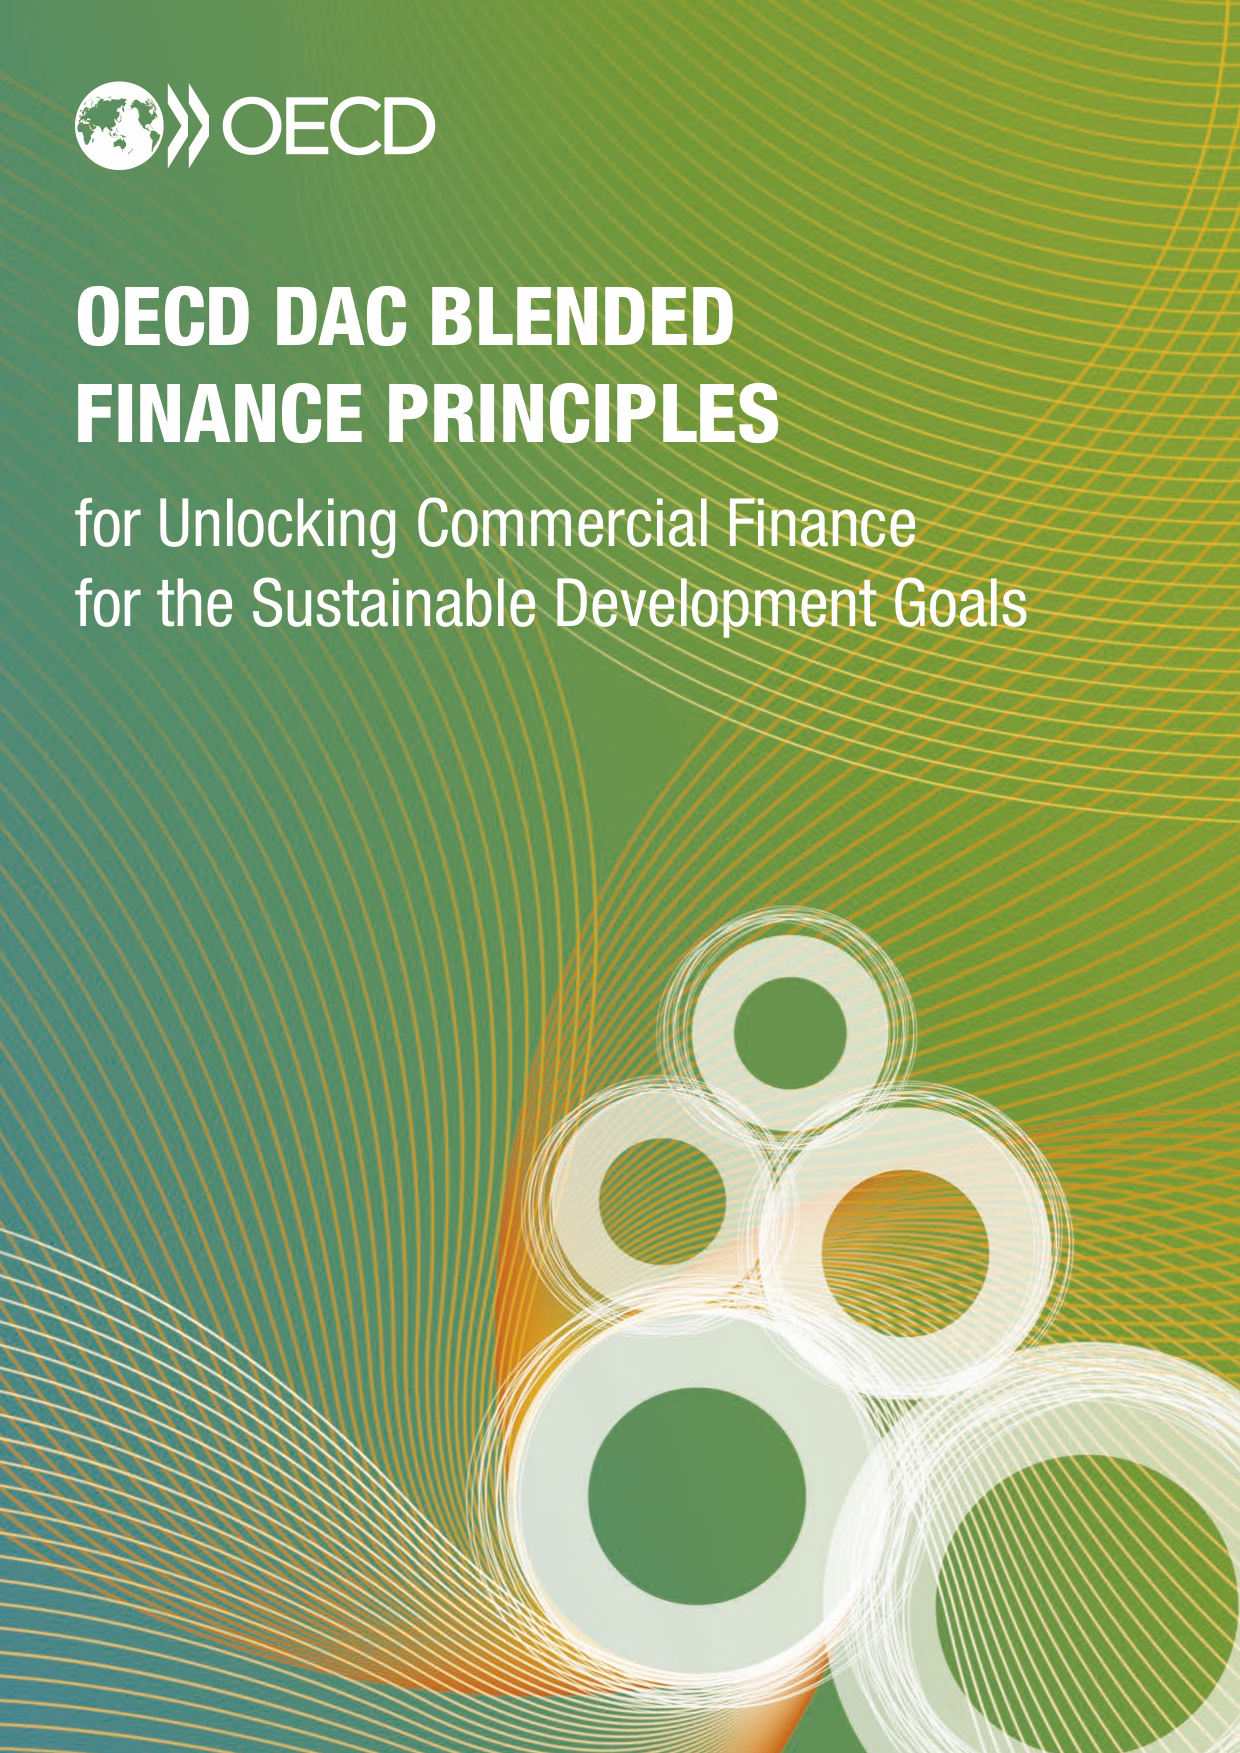 OECD DAC Blended Finance Principles for Unlocking Commercial Finance for the Sustainable Development Goals